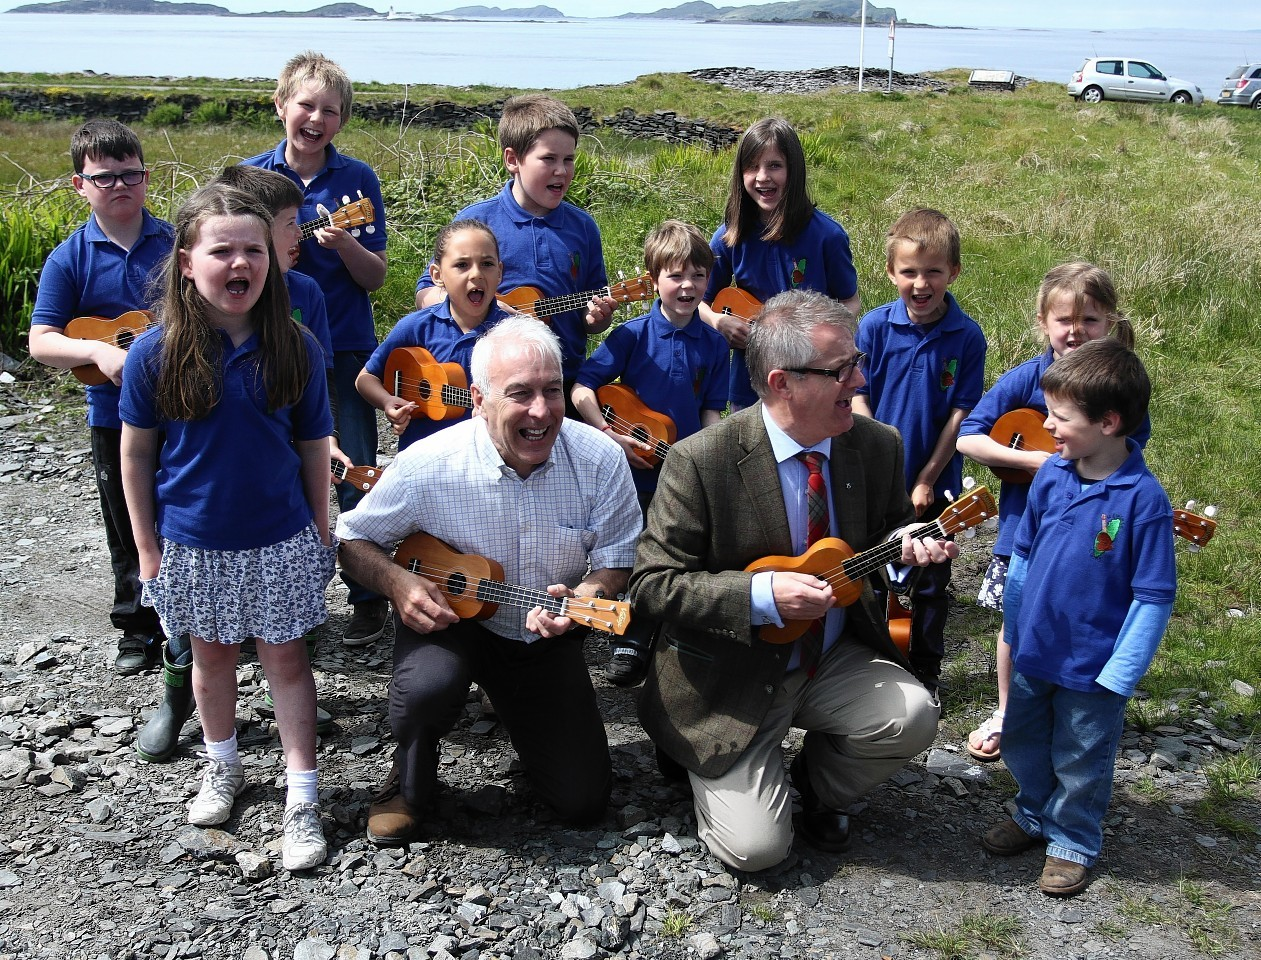 Brendan O'Hara MP for Argyll and Bute (left)  performs his first official task since he has been elected to parliament by helping the Trustees and Children of Luing Primary School unveil the Fladda Light